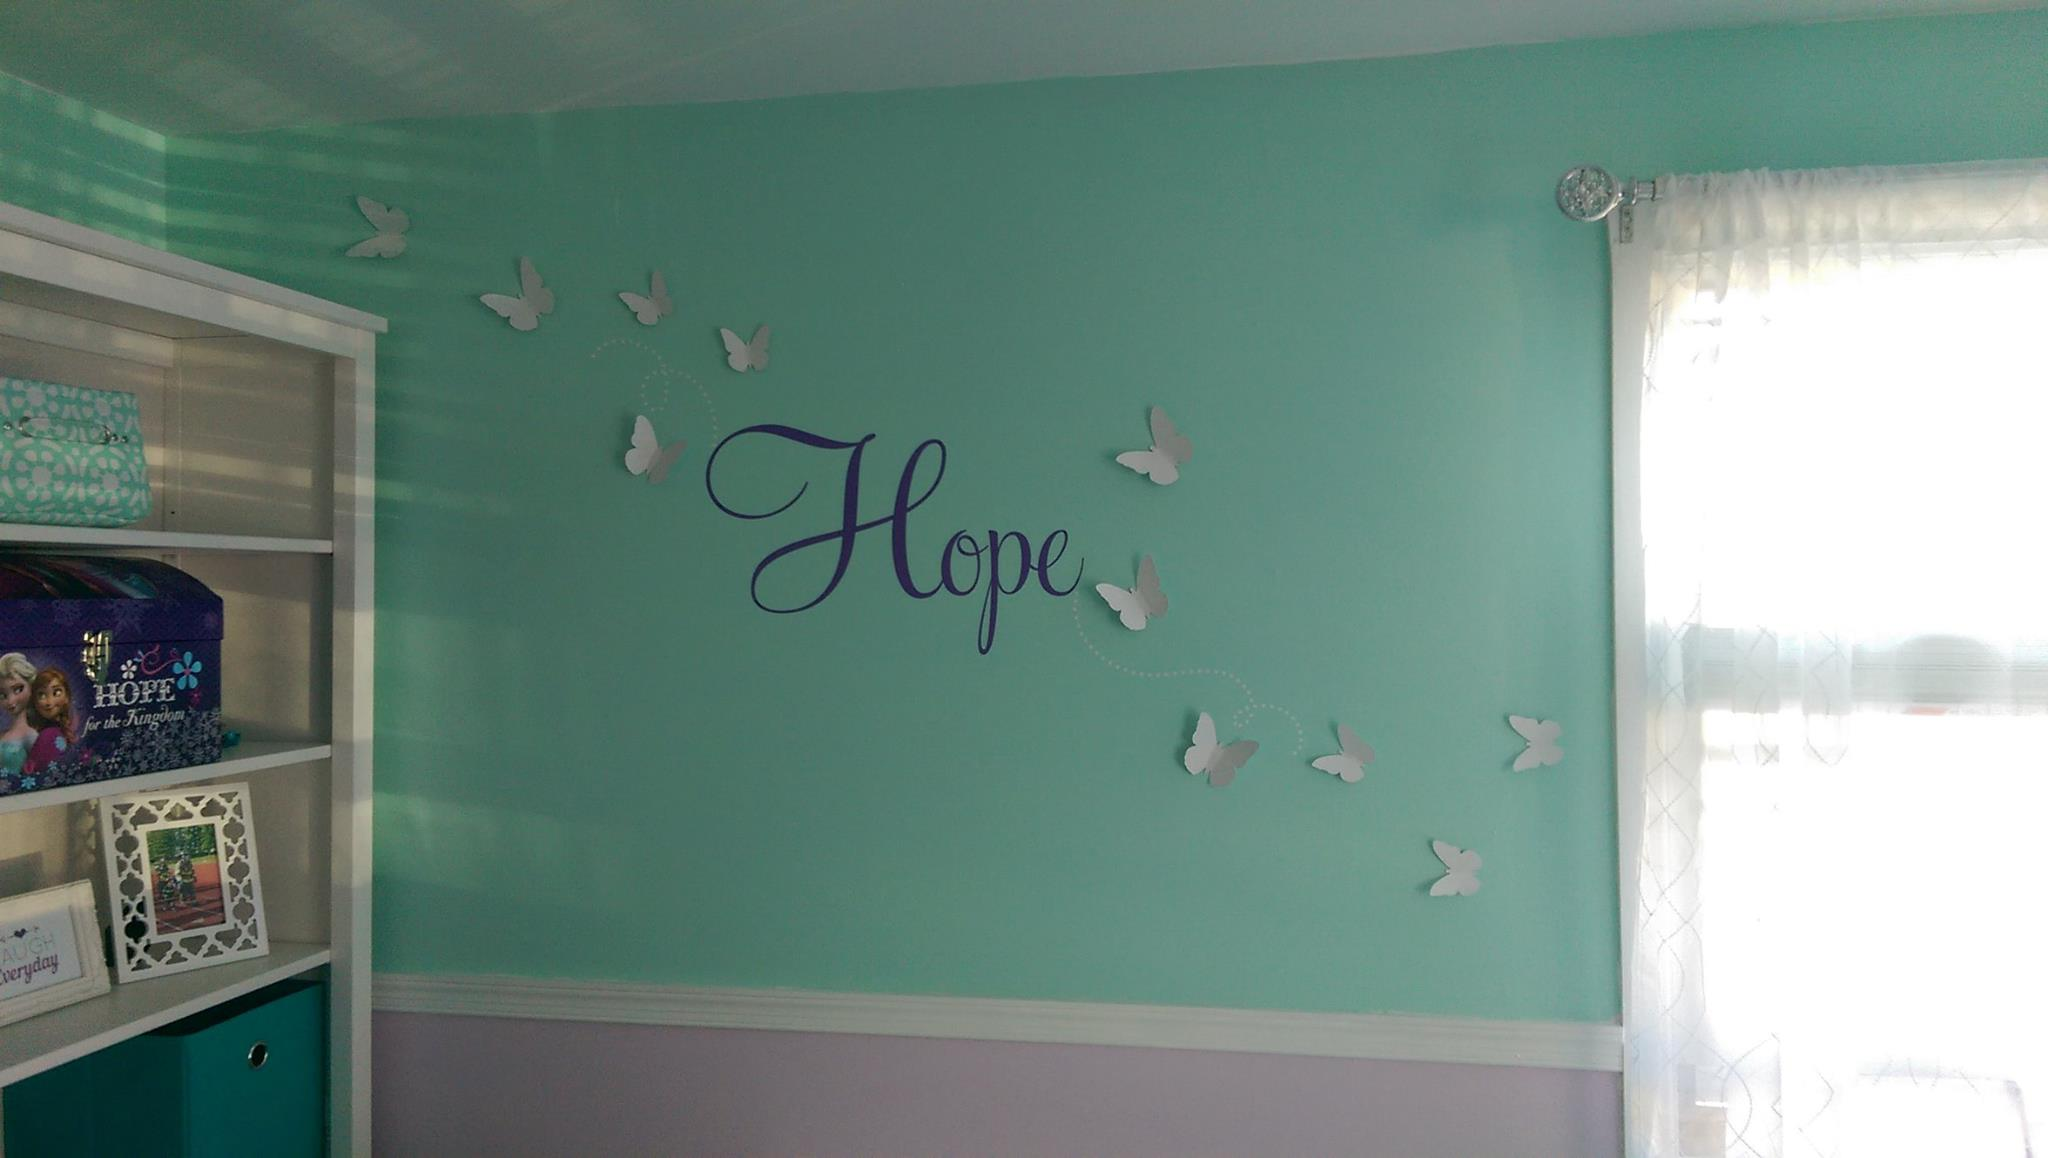 Vinyl wall art donated by Lola Decor and paper butterflies donated by Magical Whimsy. (both on Etsy)